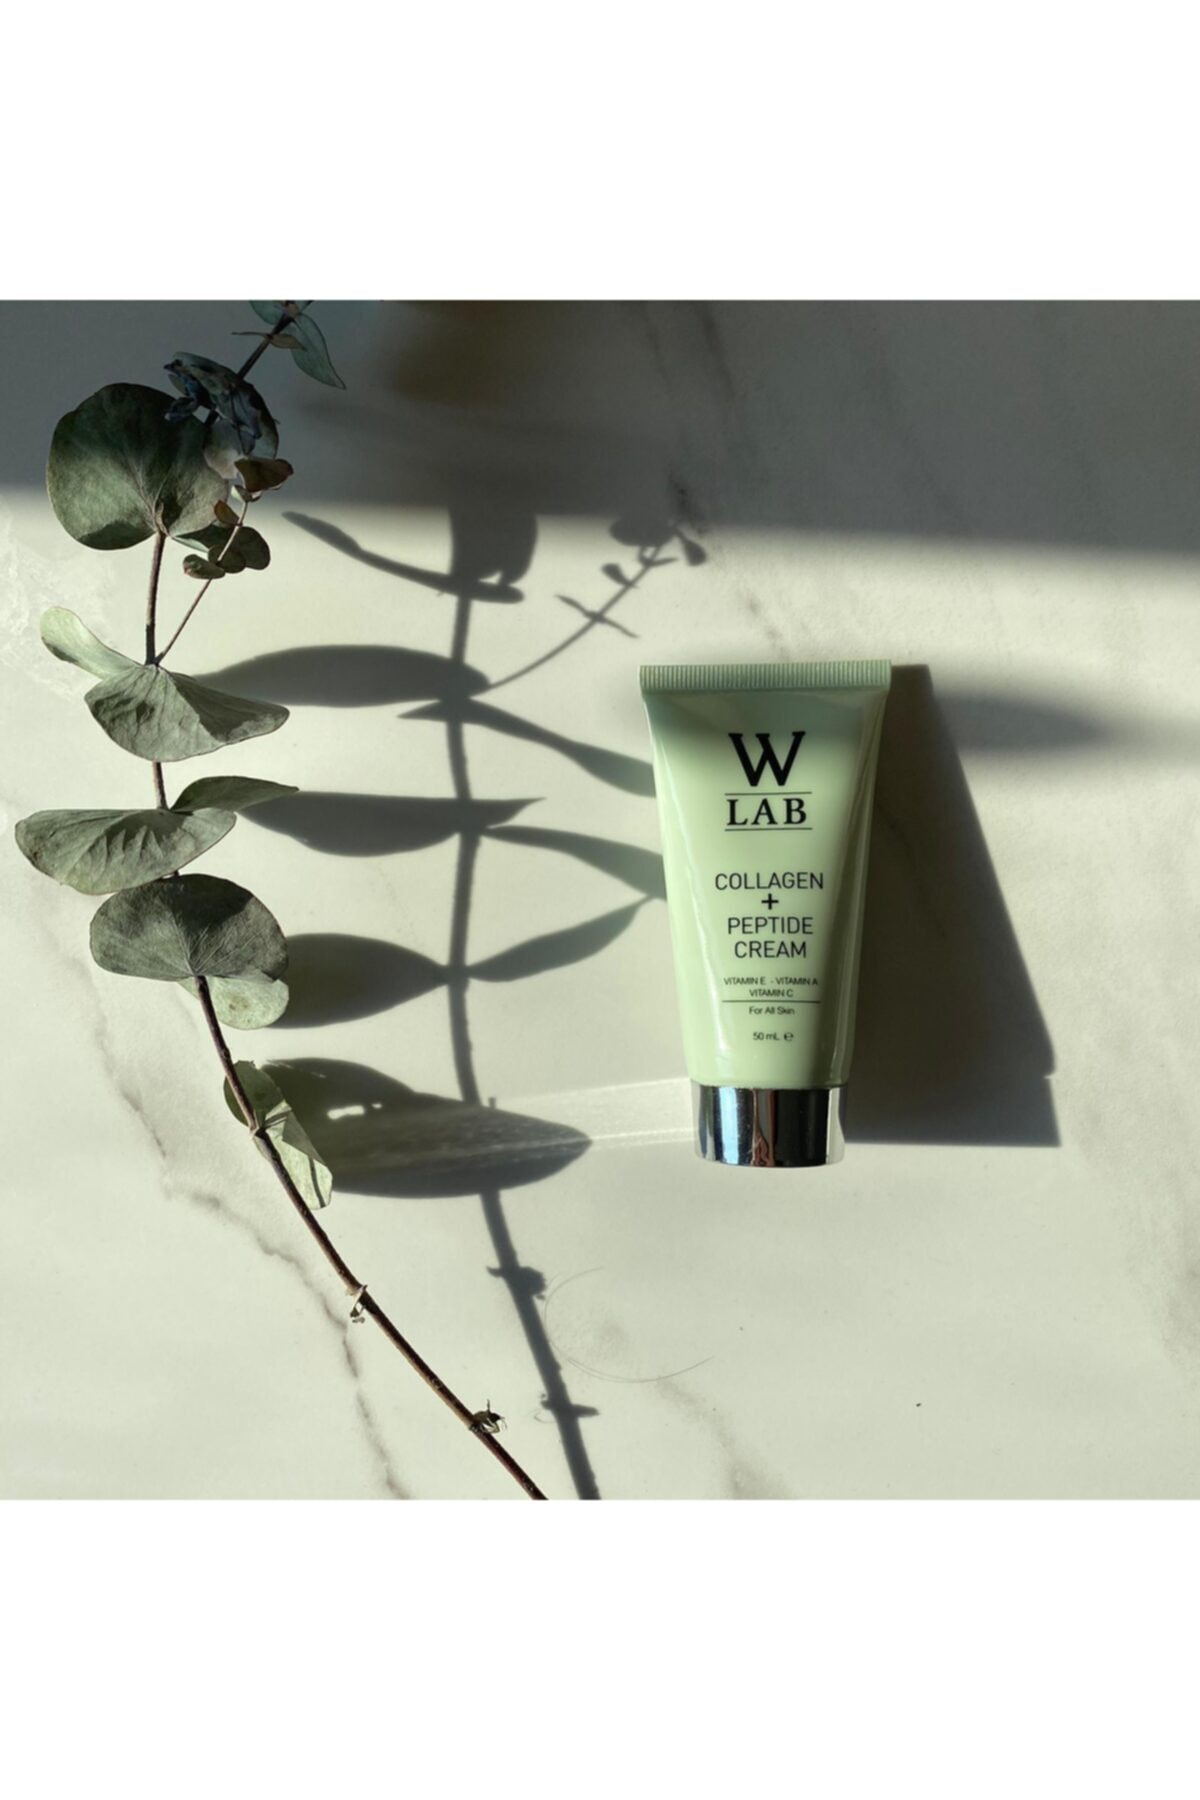 W-Lab Cosmetic W-Lab Anti-Aging Collagen Peptide Rejuvenating Cream Aging and wrinkle Anti women's skin care Cream